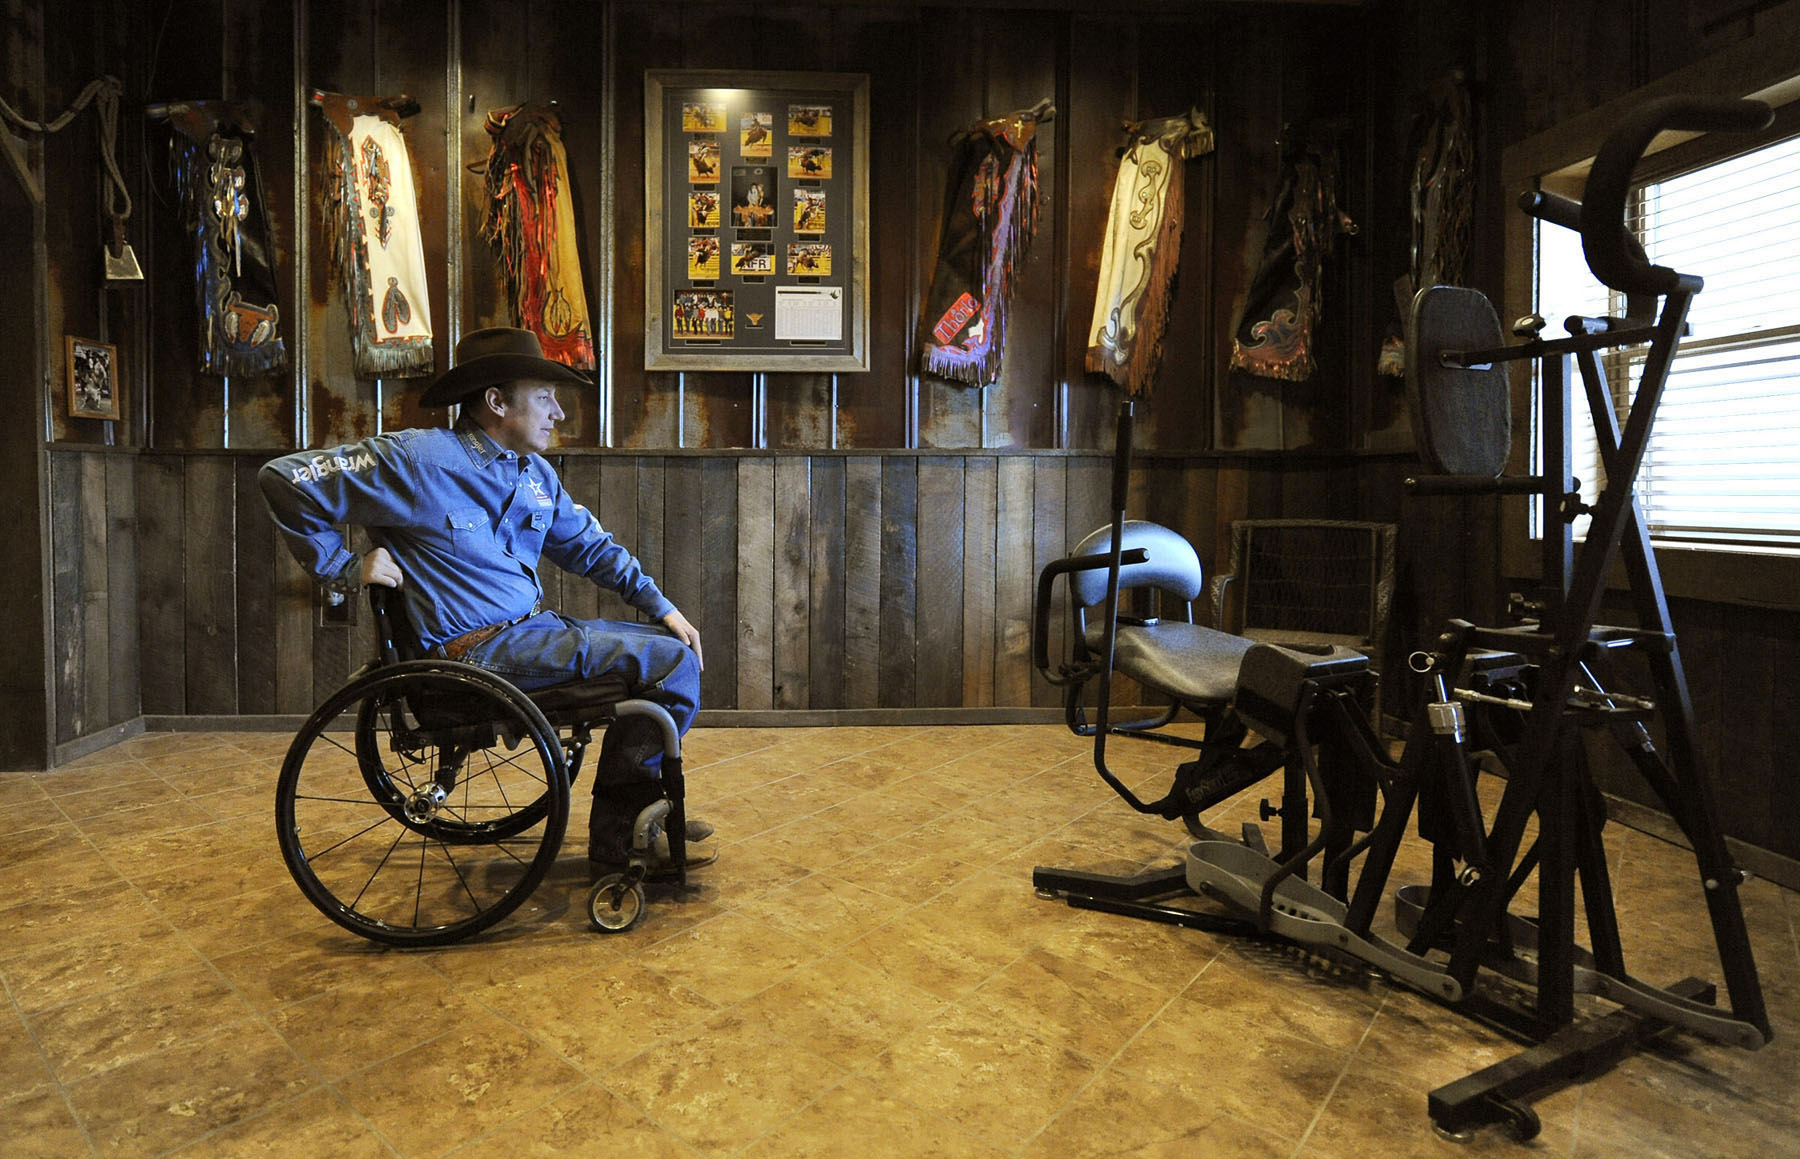 Honorable Mention | PortraitJeff Siner, The Charlotte ObserverJerome Davis was one of the best bull riders and rodeo cowboys in the country when he was thrown from a bull breaking his neck. The injury has left him with paralysis from the chest down. Davis tries to use the standing frame an hour a day. Jeff Siner - jsiner@charlotteobserver.com